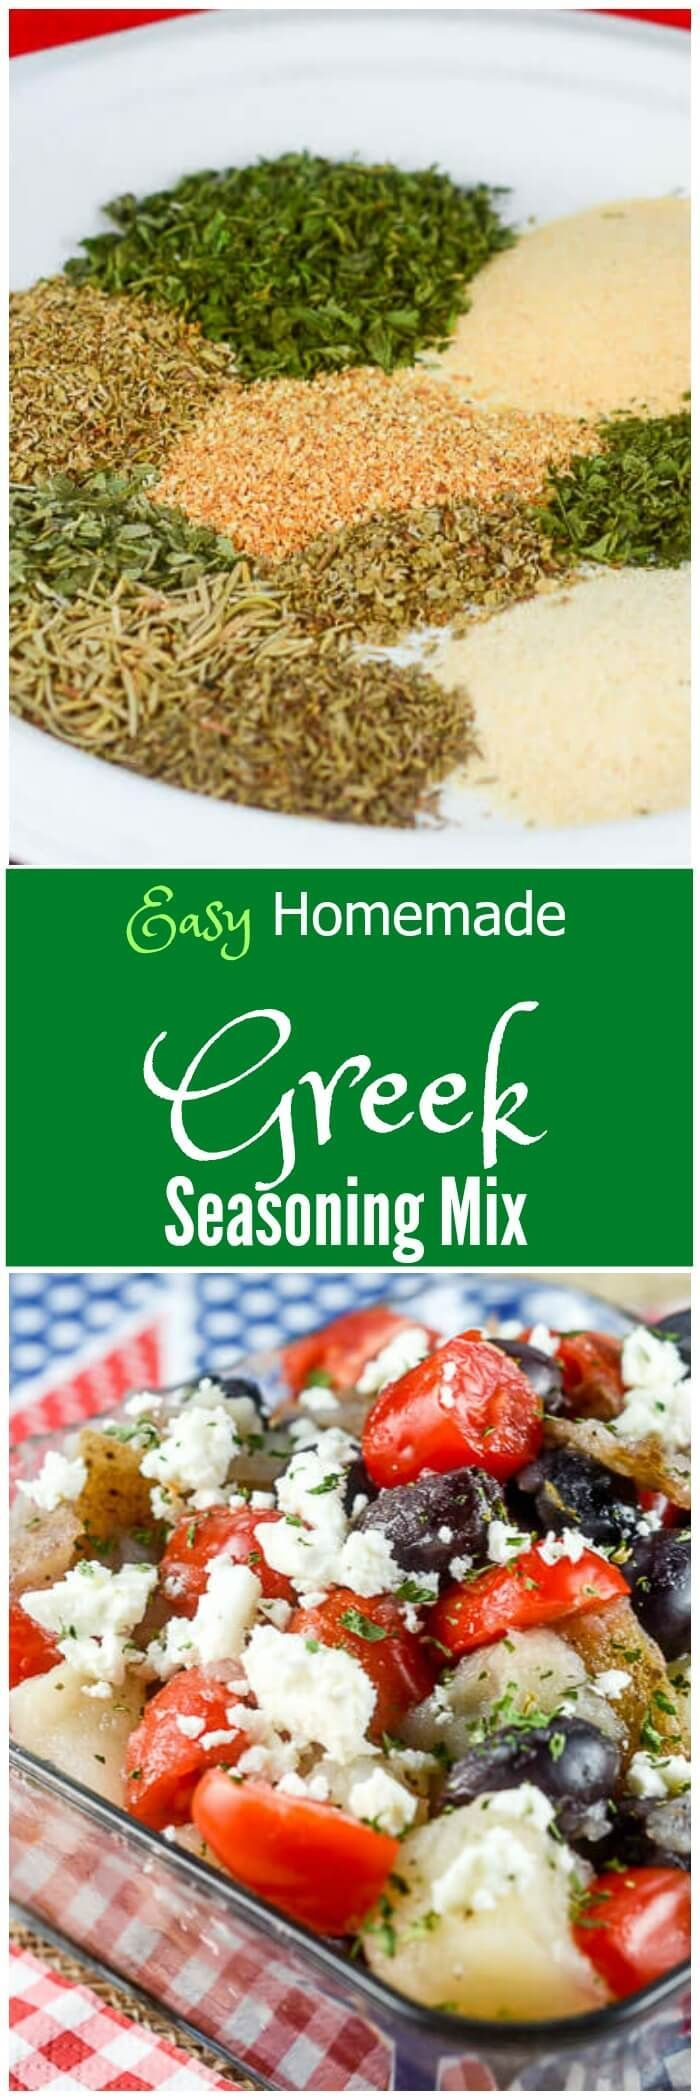 This Easy Homemade Greek Seasoning Mix recipe is a budget friendly option to add bold Greek flavors to your favorite dishes or recipes. via Flavor Mosaic